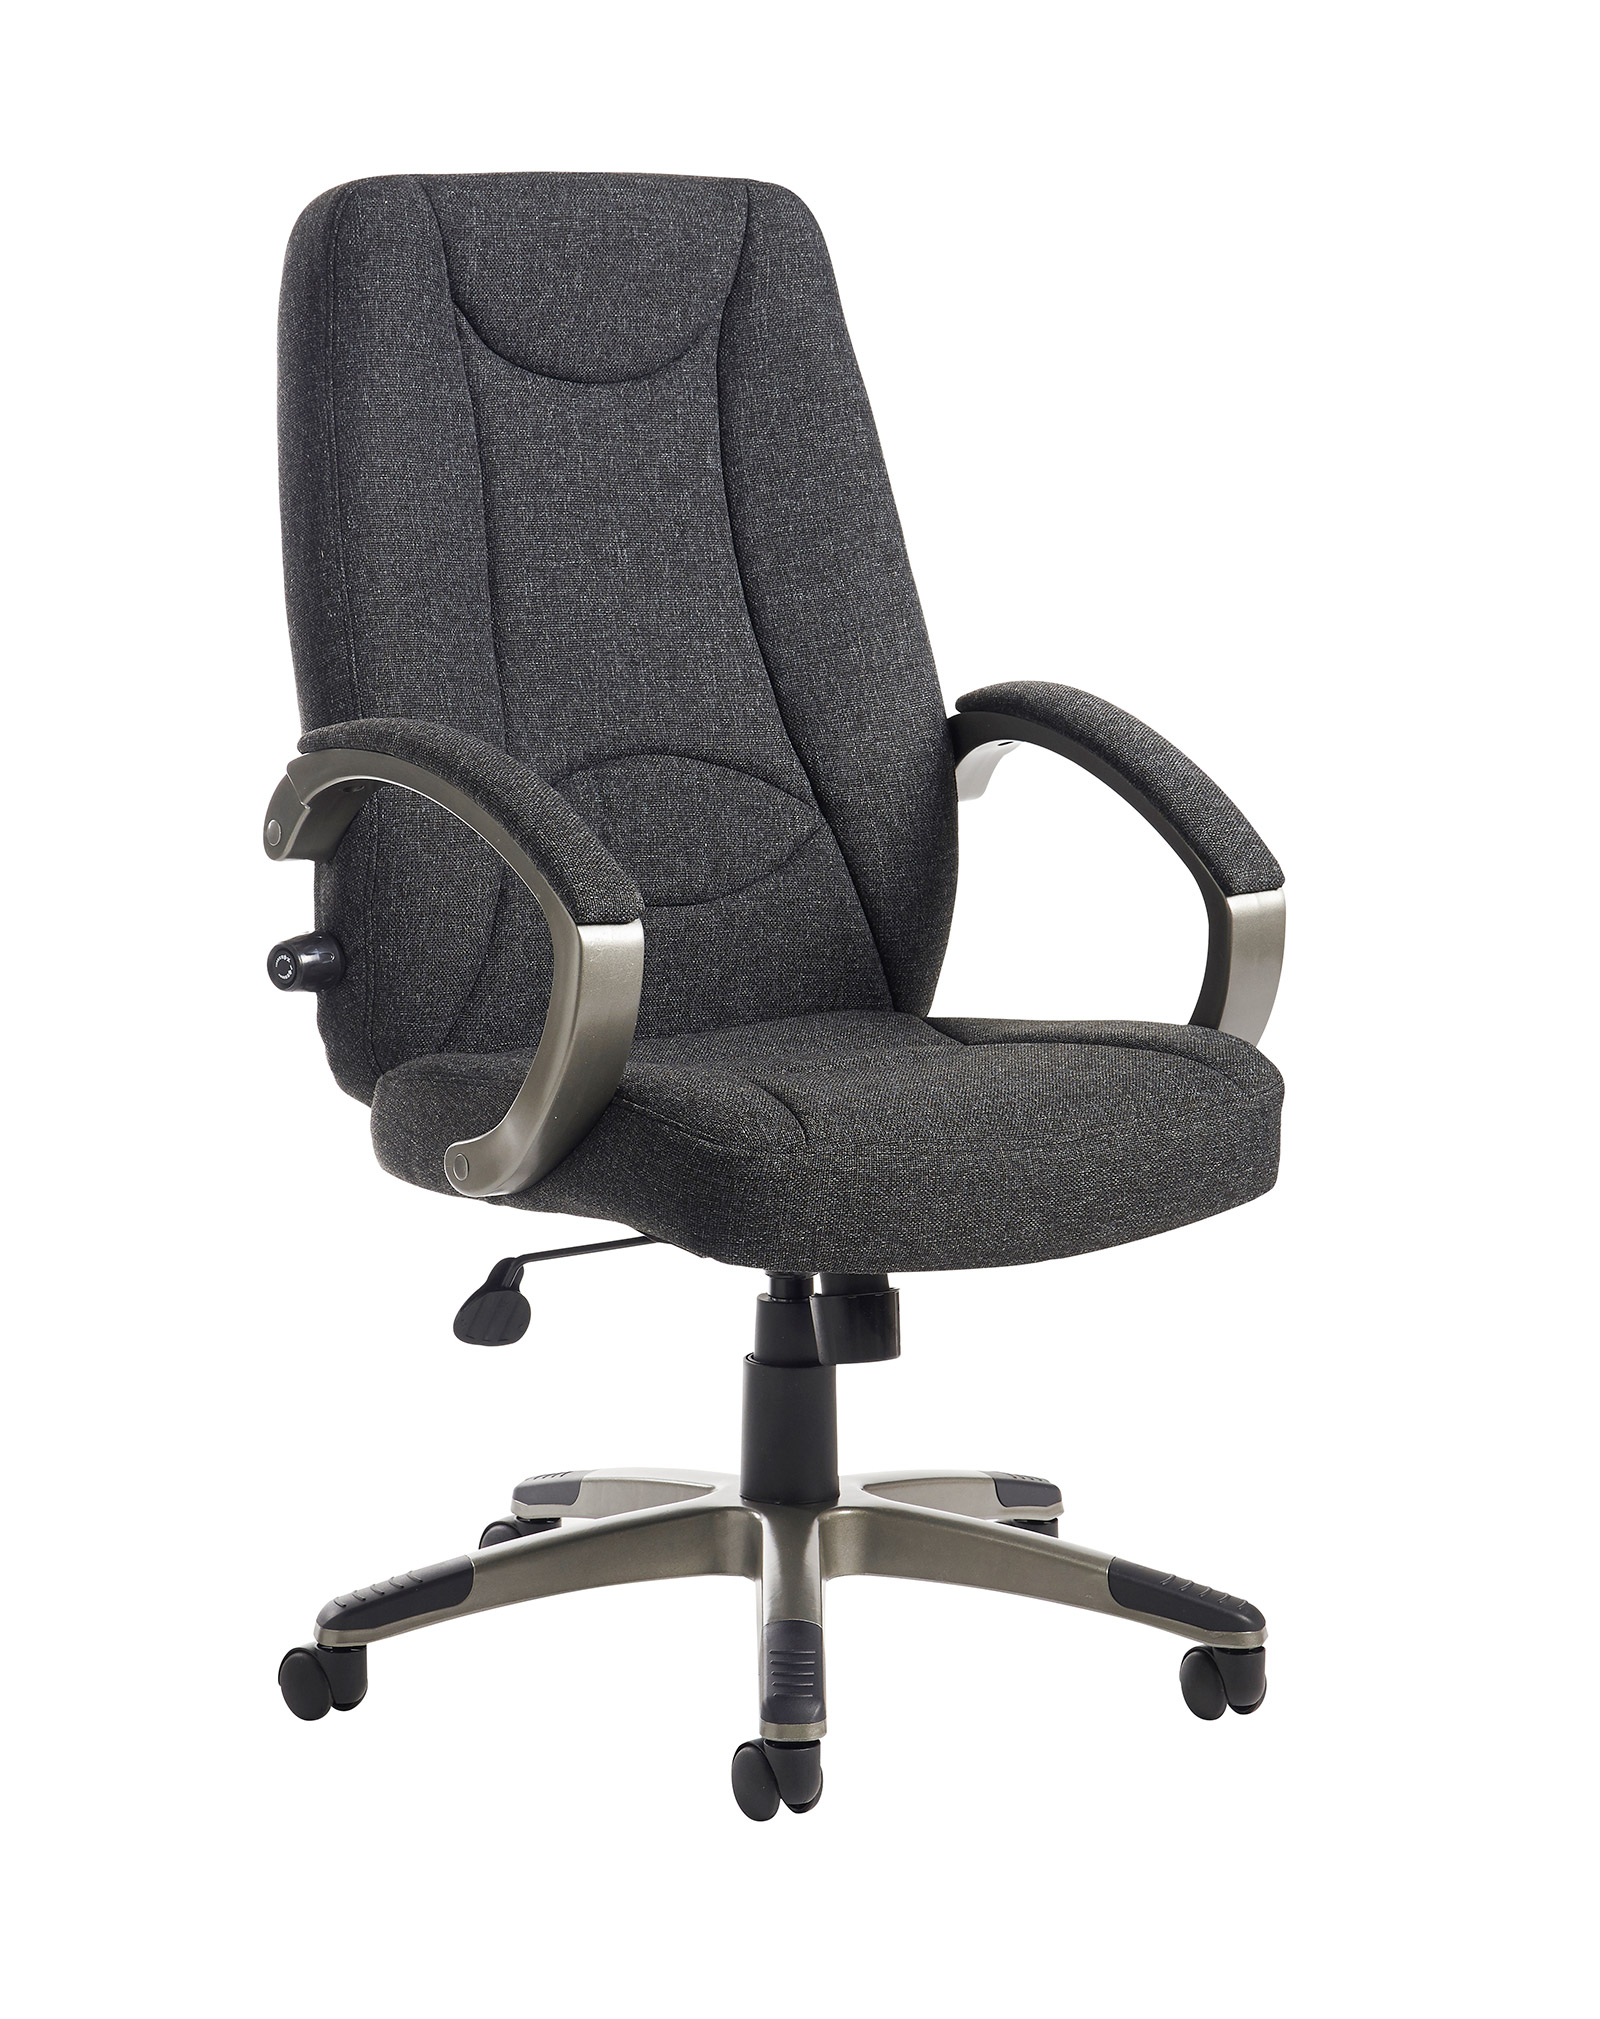 Lucca high back managers chair